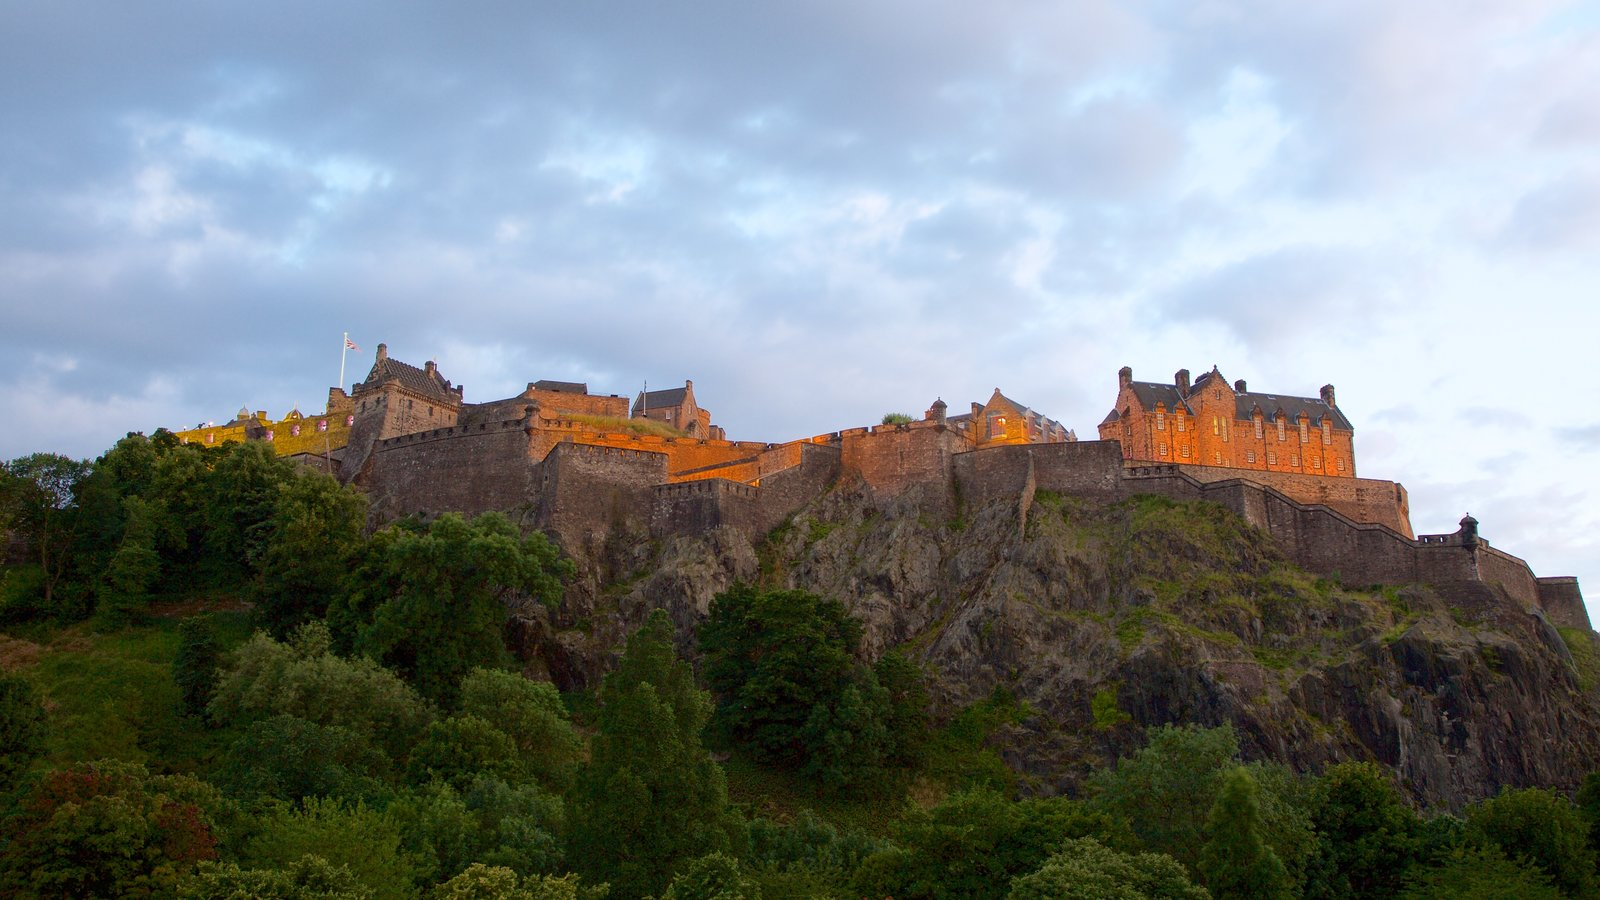 Edinburgh Castle showing a small town or village